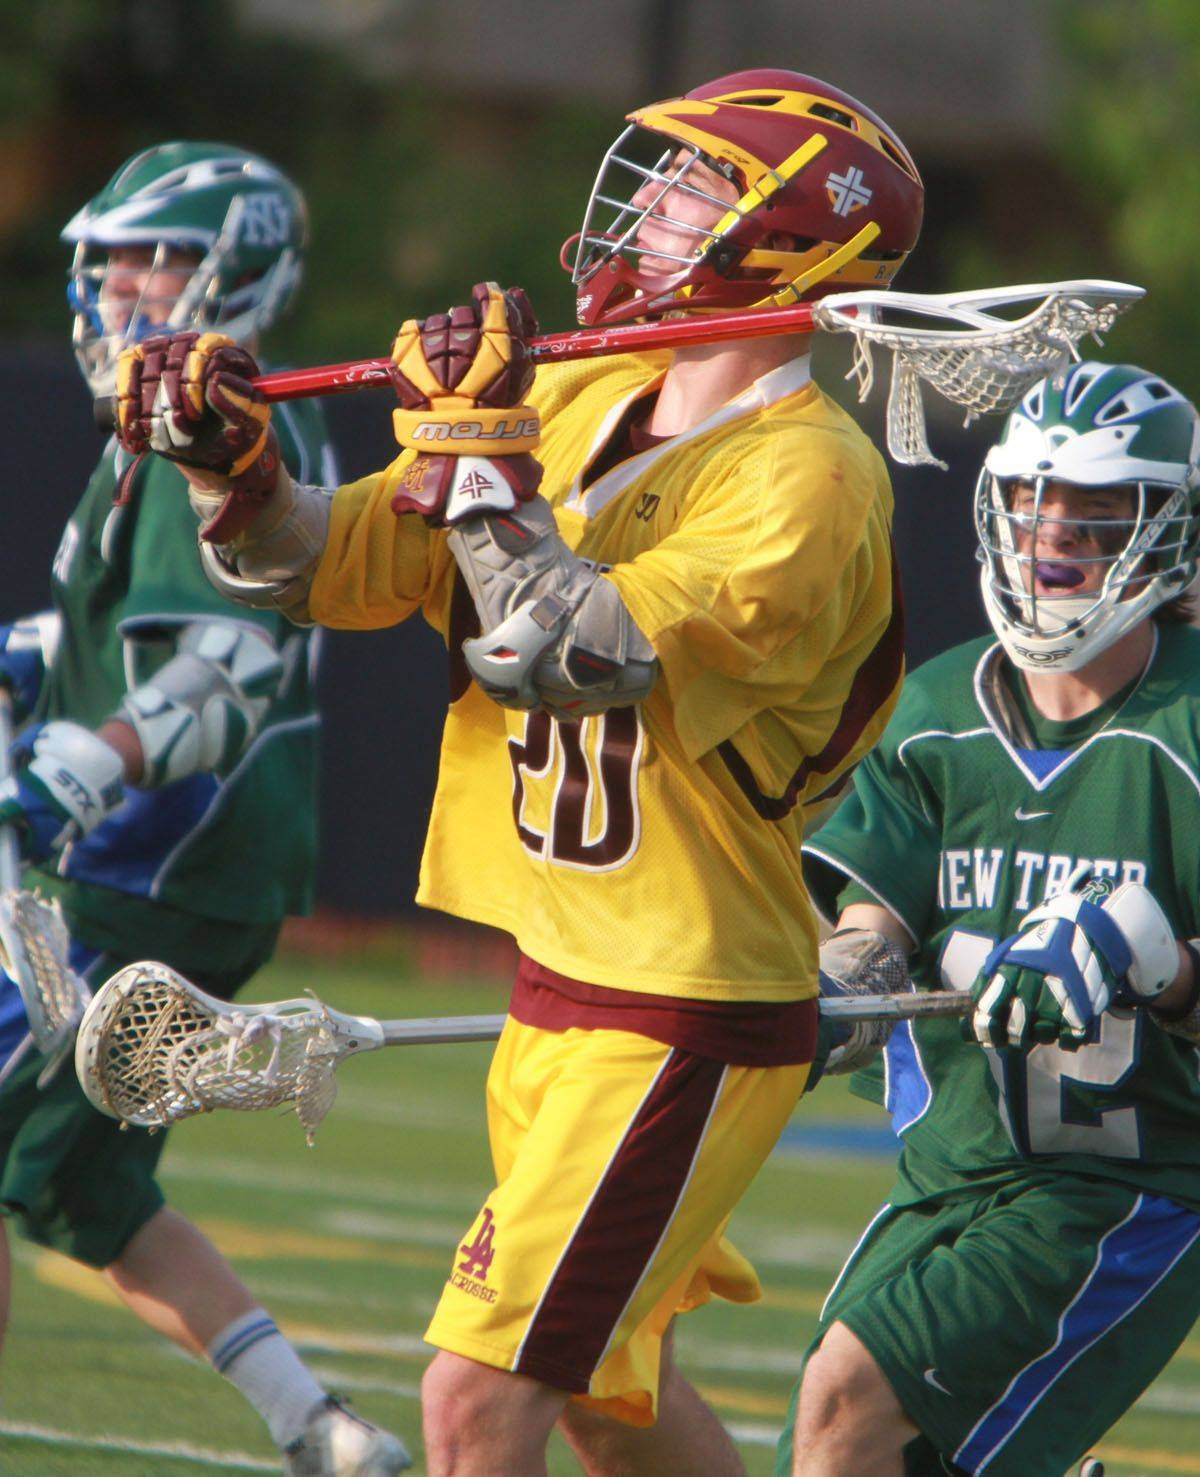 Loyola Academy's Tom Sullivan looks to pass against New Trier in the IHSLA state lacrosse championship game in Oak Park on Saturday.